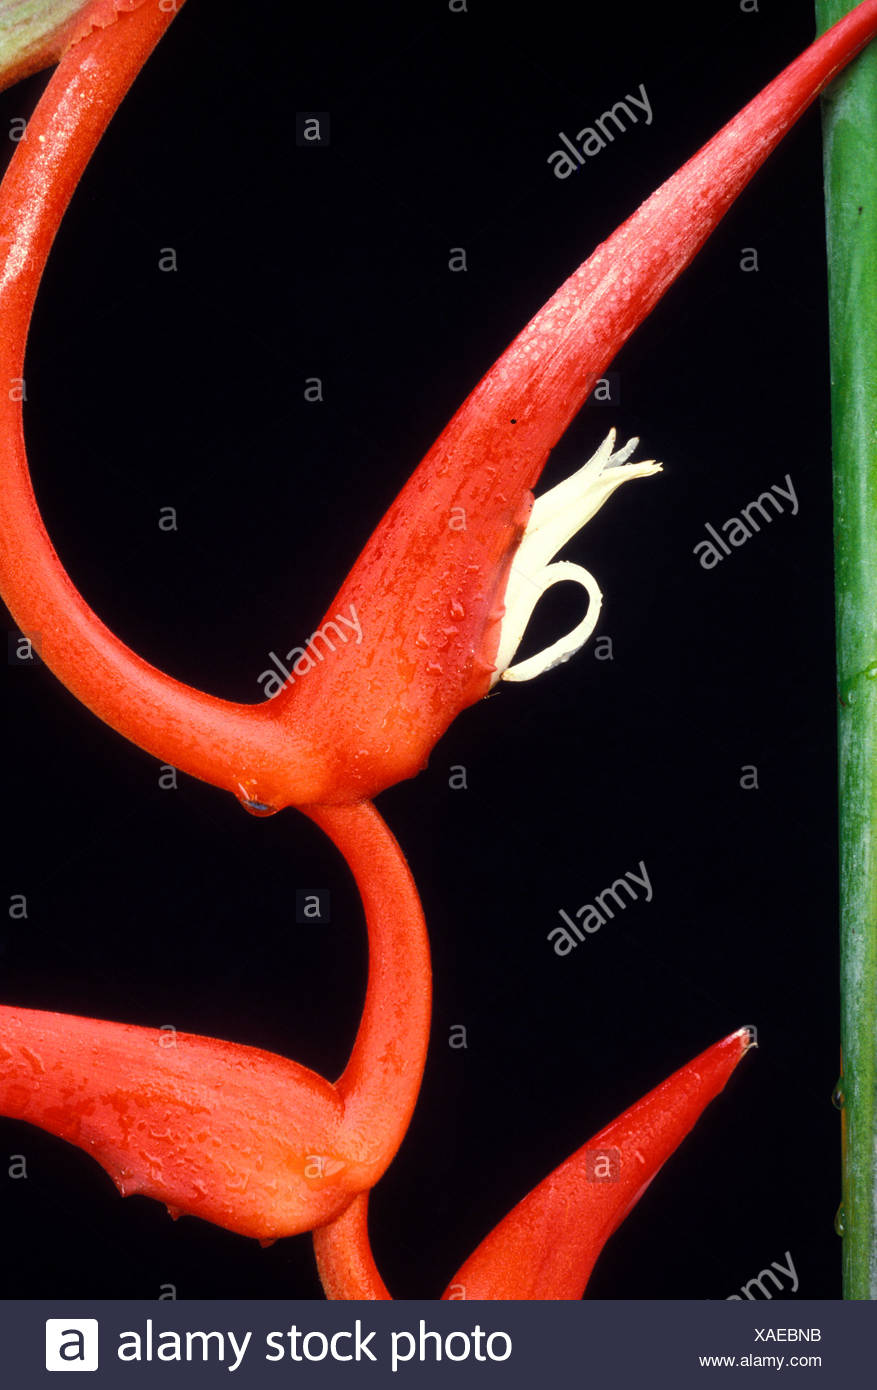 Detail of a bract and flower of Heliconia pendula, also known as Roseo-pendula, against a background of black - Stock Image